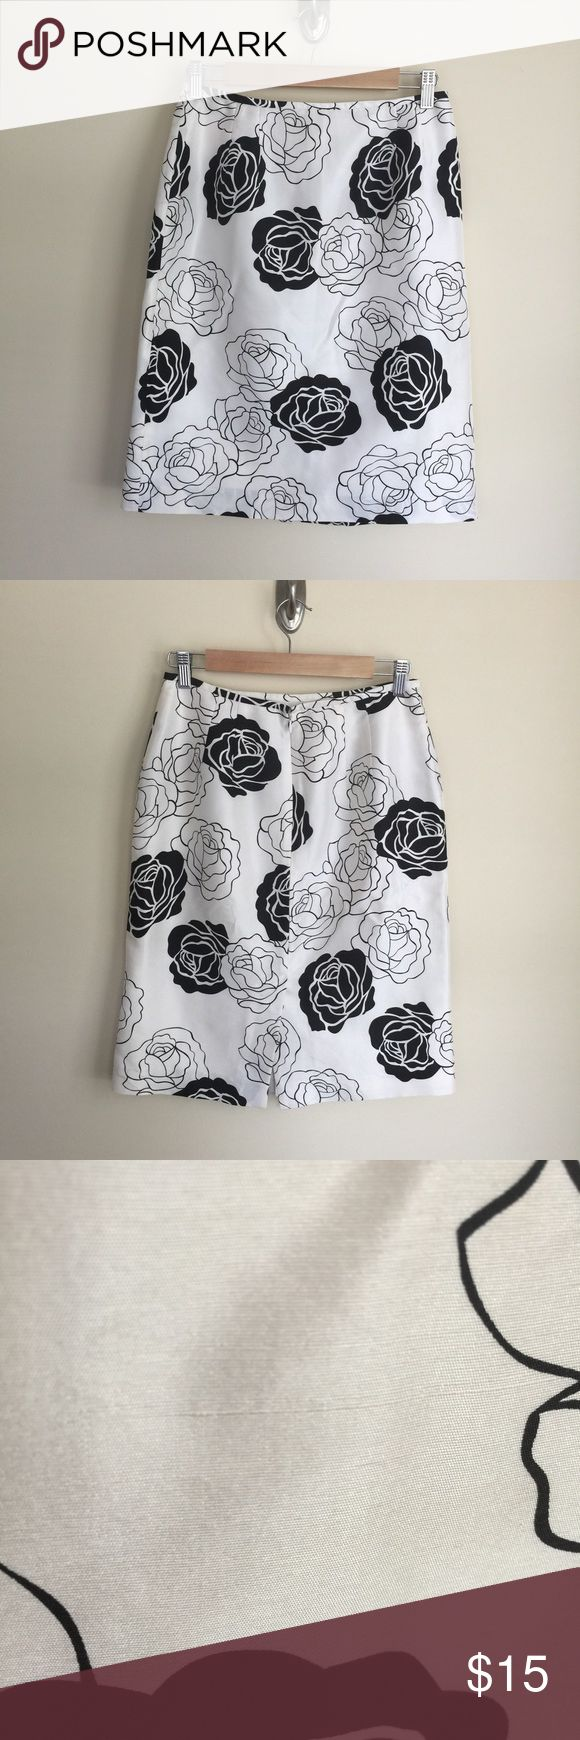 "Dress Barn black and white floral silk skirt sz 6 Dress Barn black and white floral silk skirt, size 6. Tailored style, fully lined, rear zip and hook closure, rear kick slot.  Silk has natural texture (photo 3). Condition:  very good pre-loved. Flaw: some pulling at rear and side seams (photo 4). Material:  shell 100% silk, lining 100% polyester. Measurements (approximate, taken laying flat):  length 23"", flat waist 14"", flat hip 20"", kick slit 7.5 Dress Barn Skirts Midi"